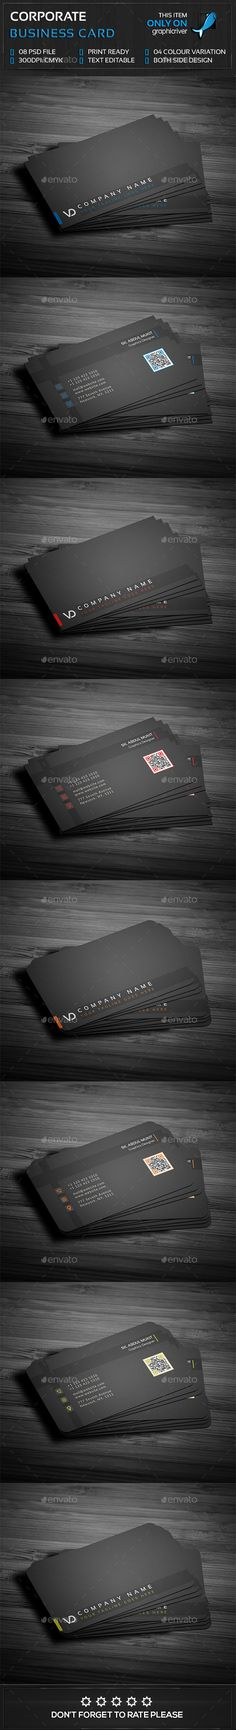 Corporate Business Card — Photoshop PSD #color #clean • Available here → https://graphicriver.net/item/corporate-business-card/14419653?ref=pxcr